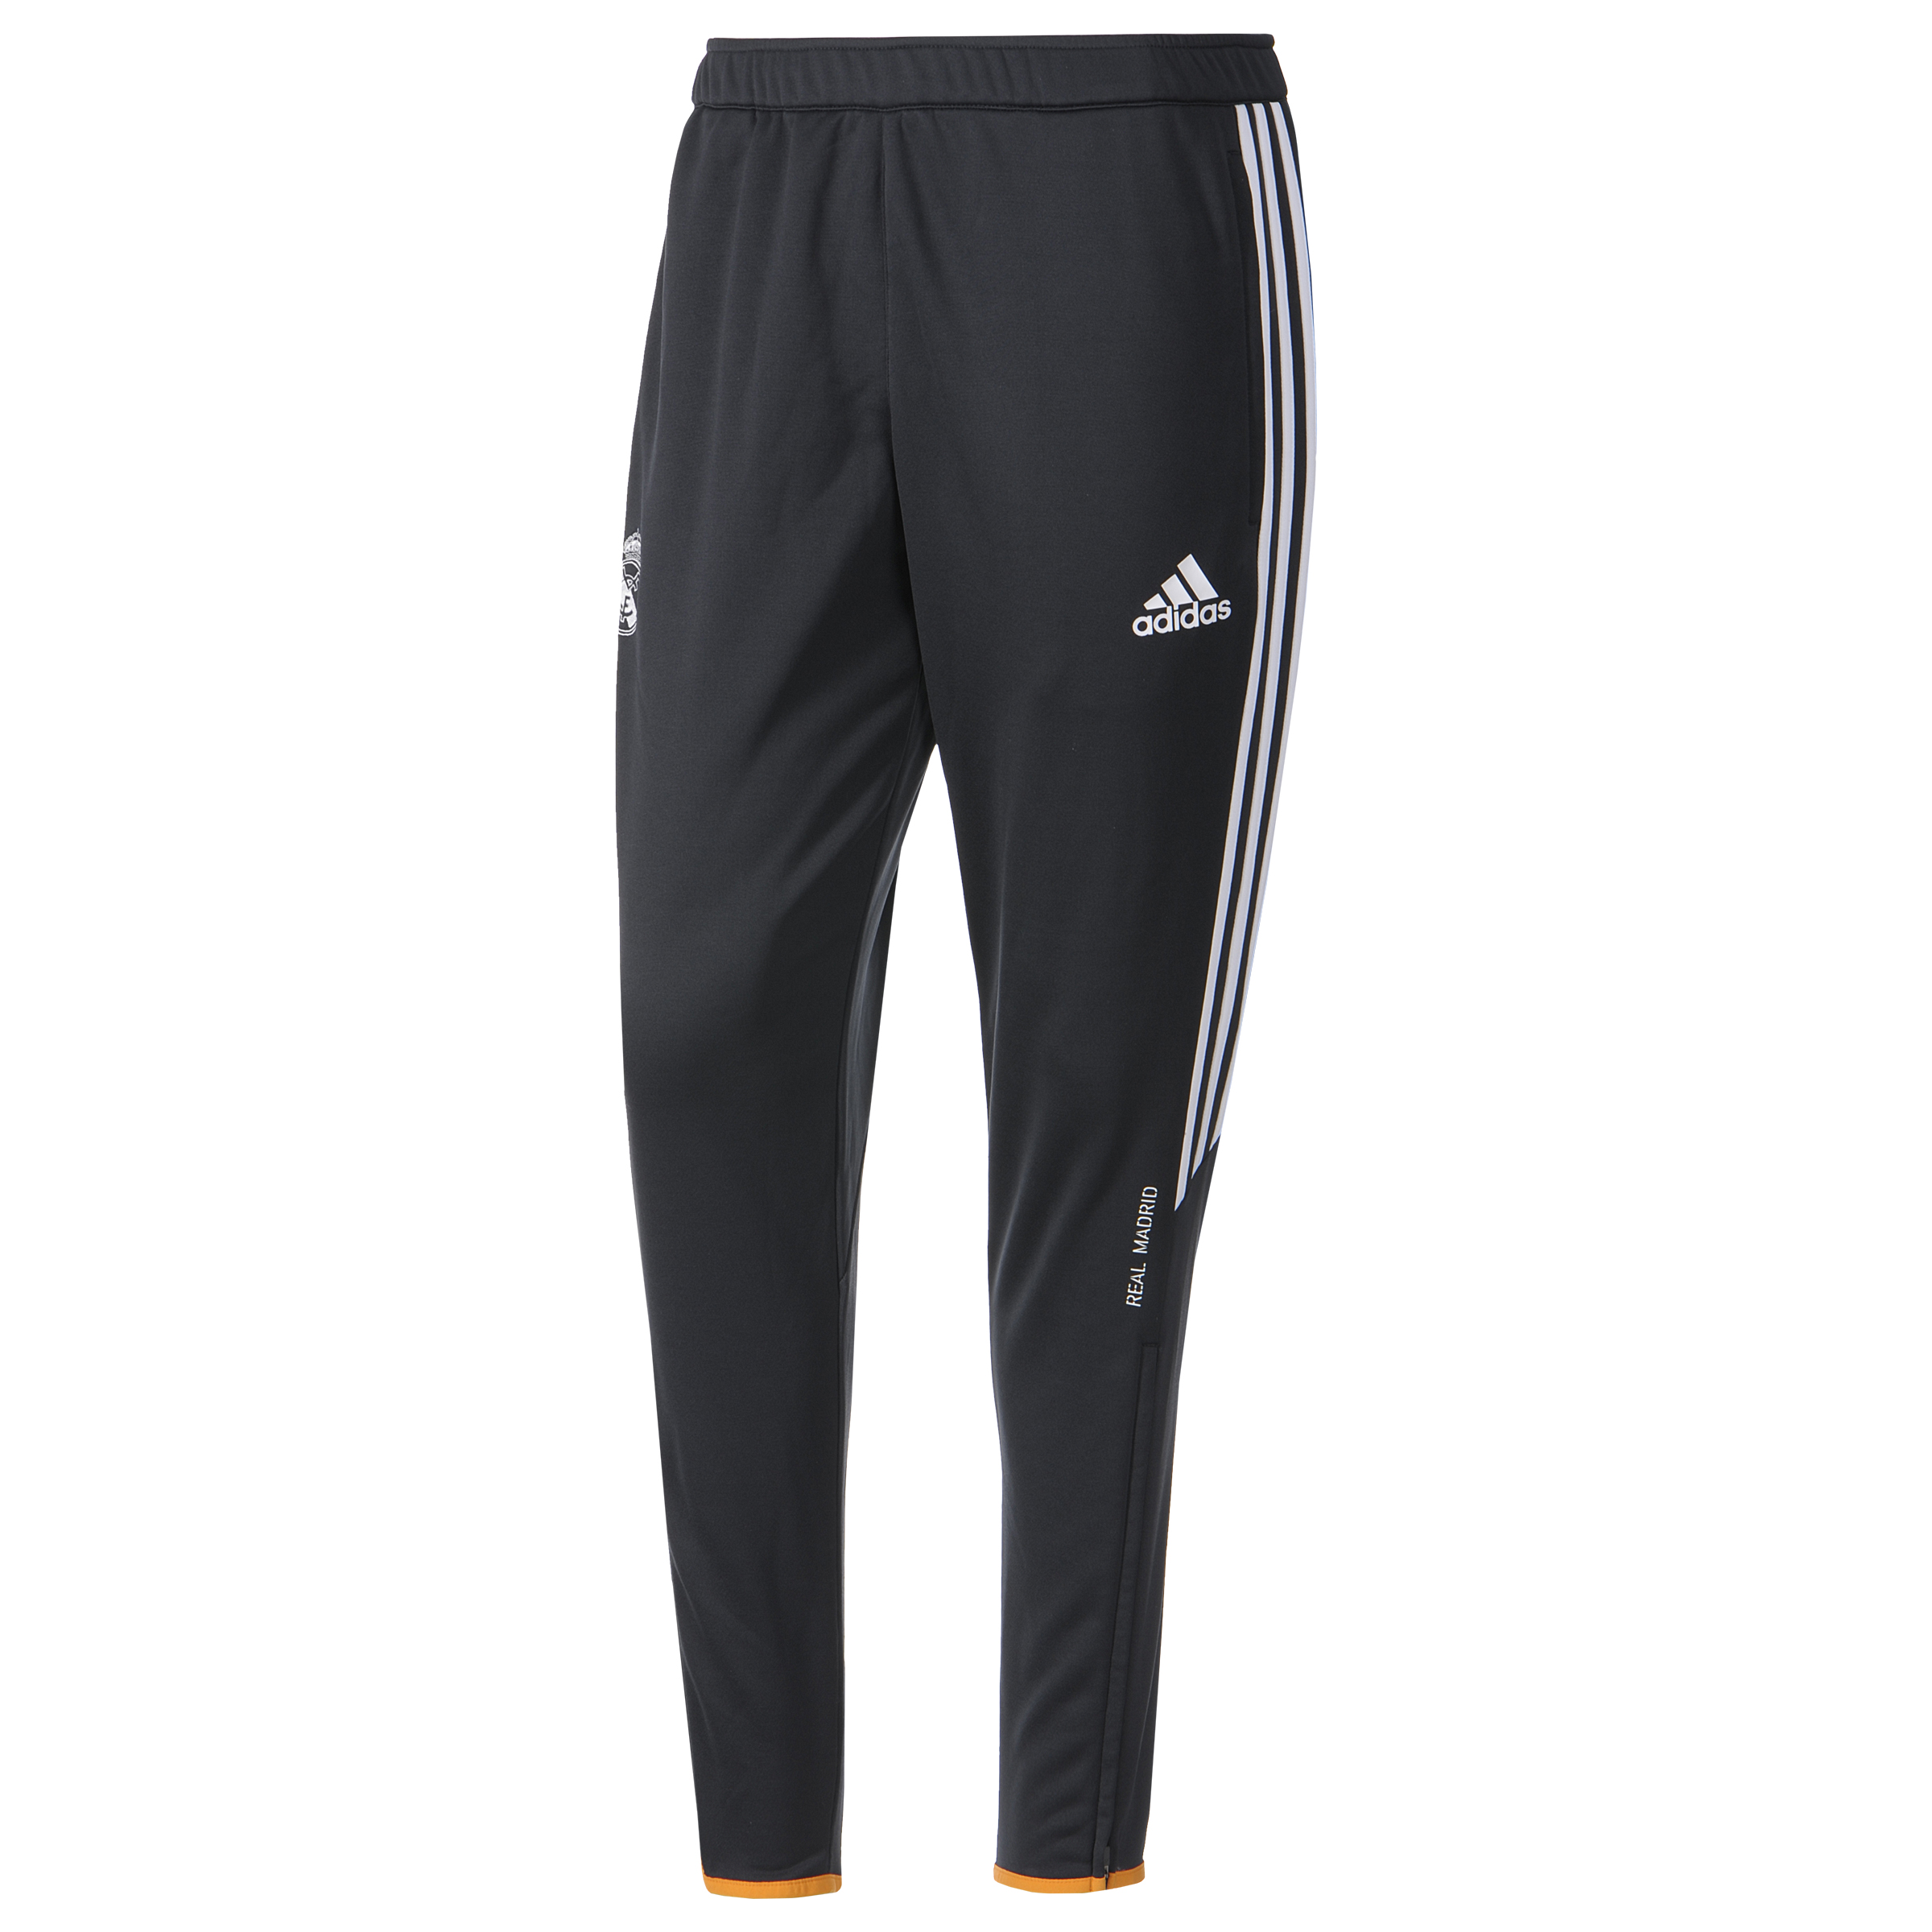 Real Madrid Training Pant - Mens Black